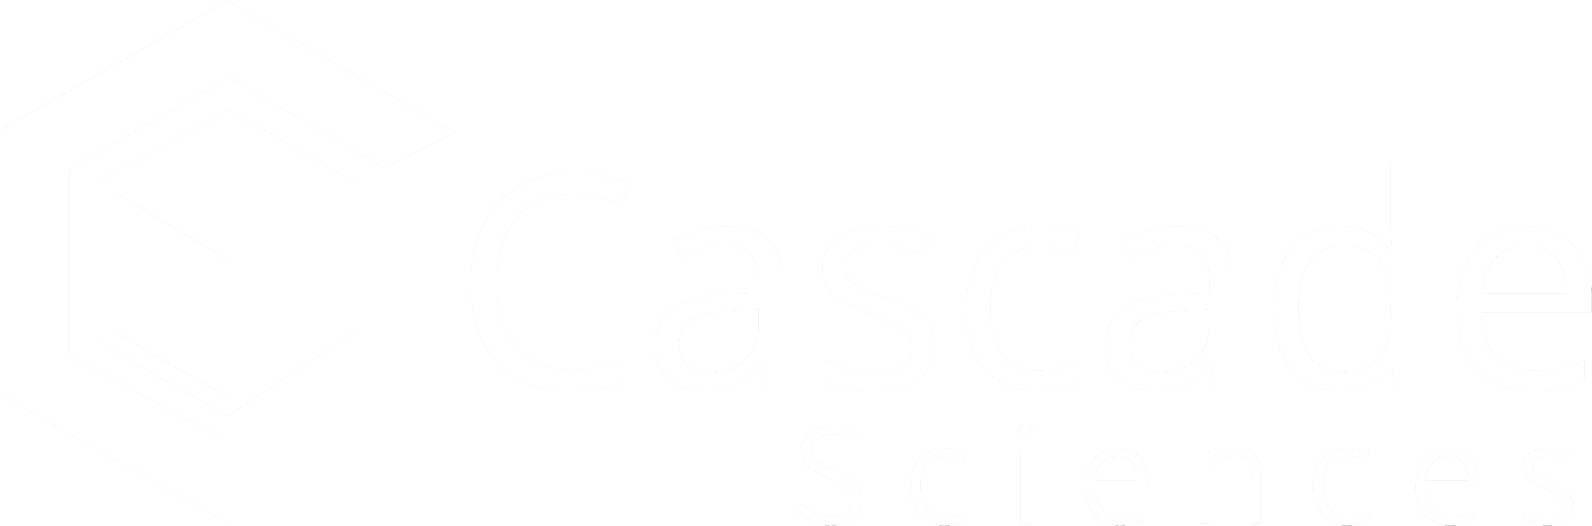 Cascade Sciences